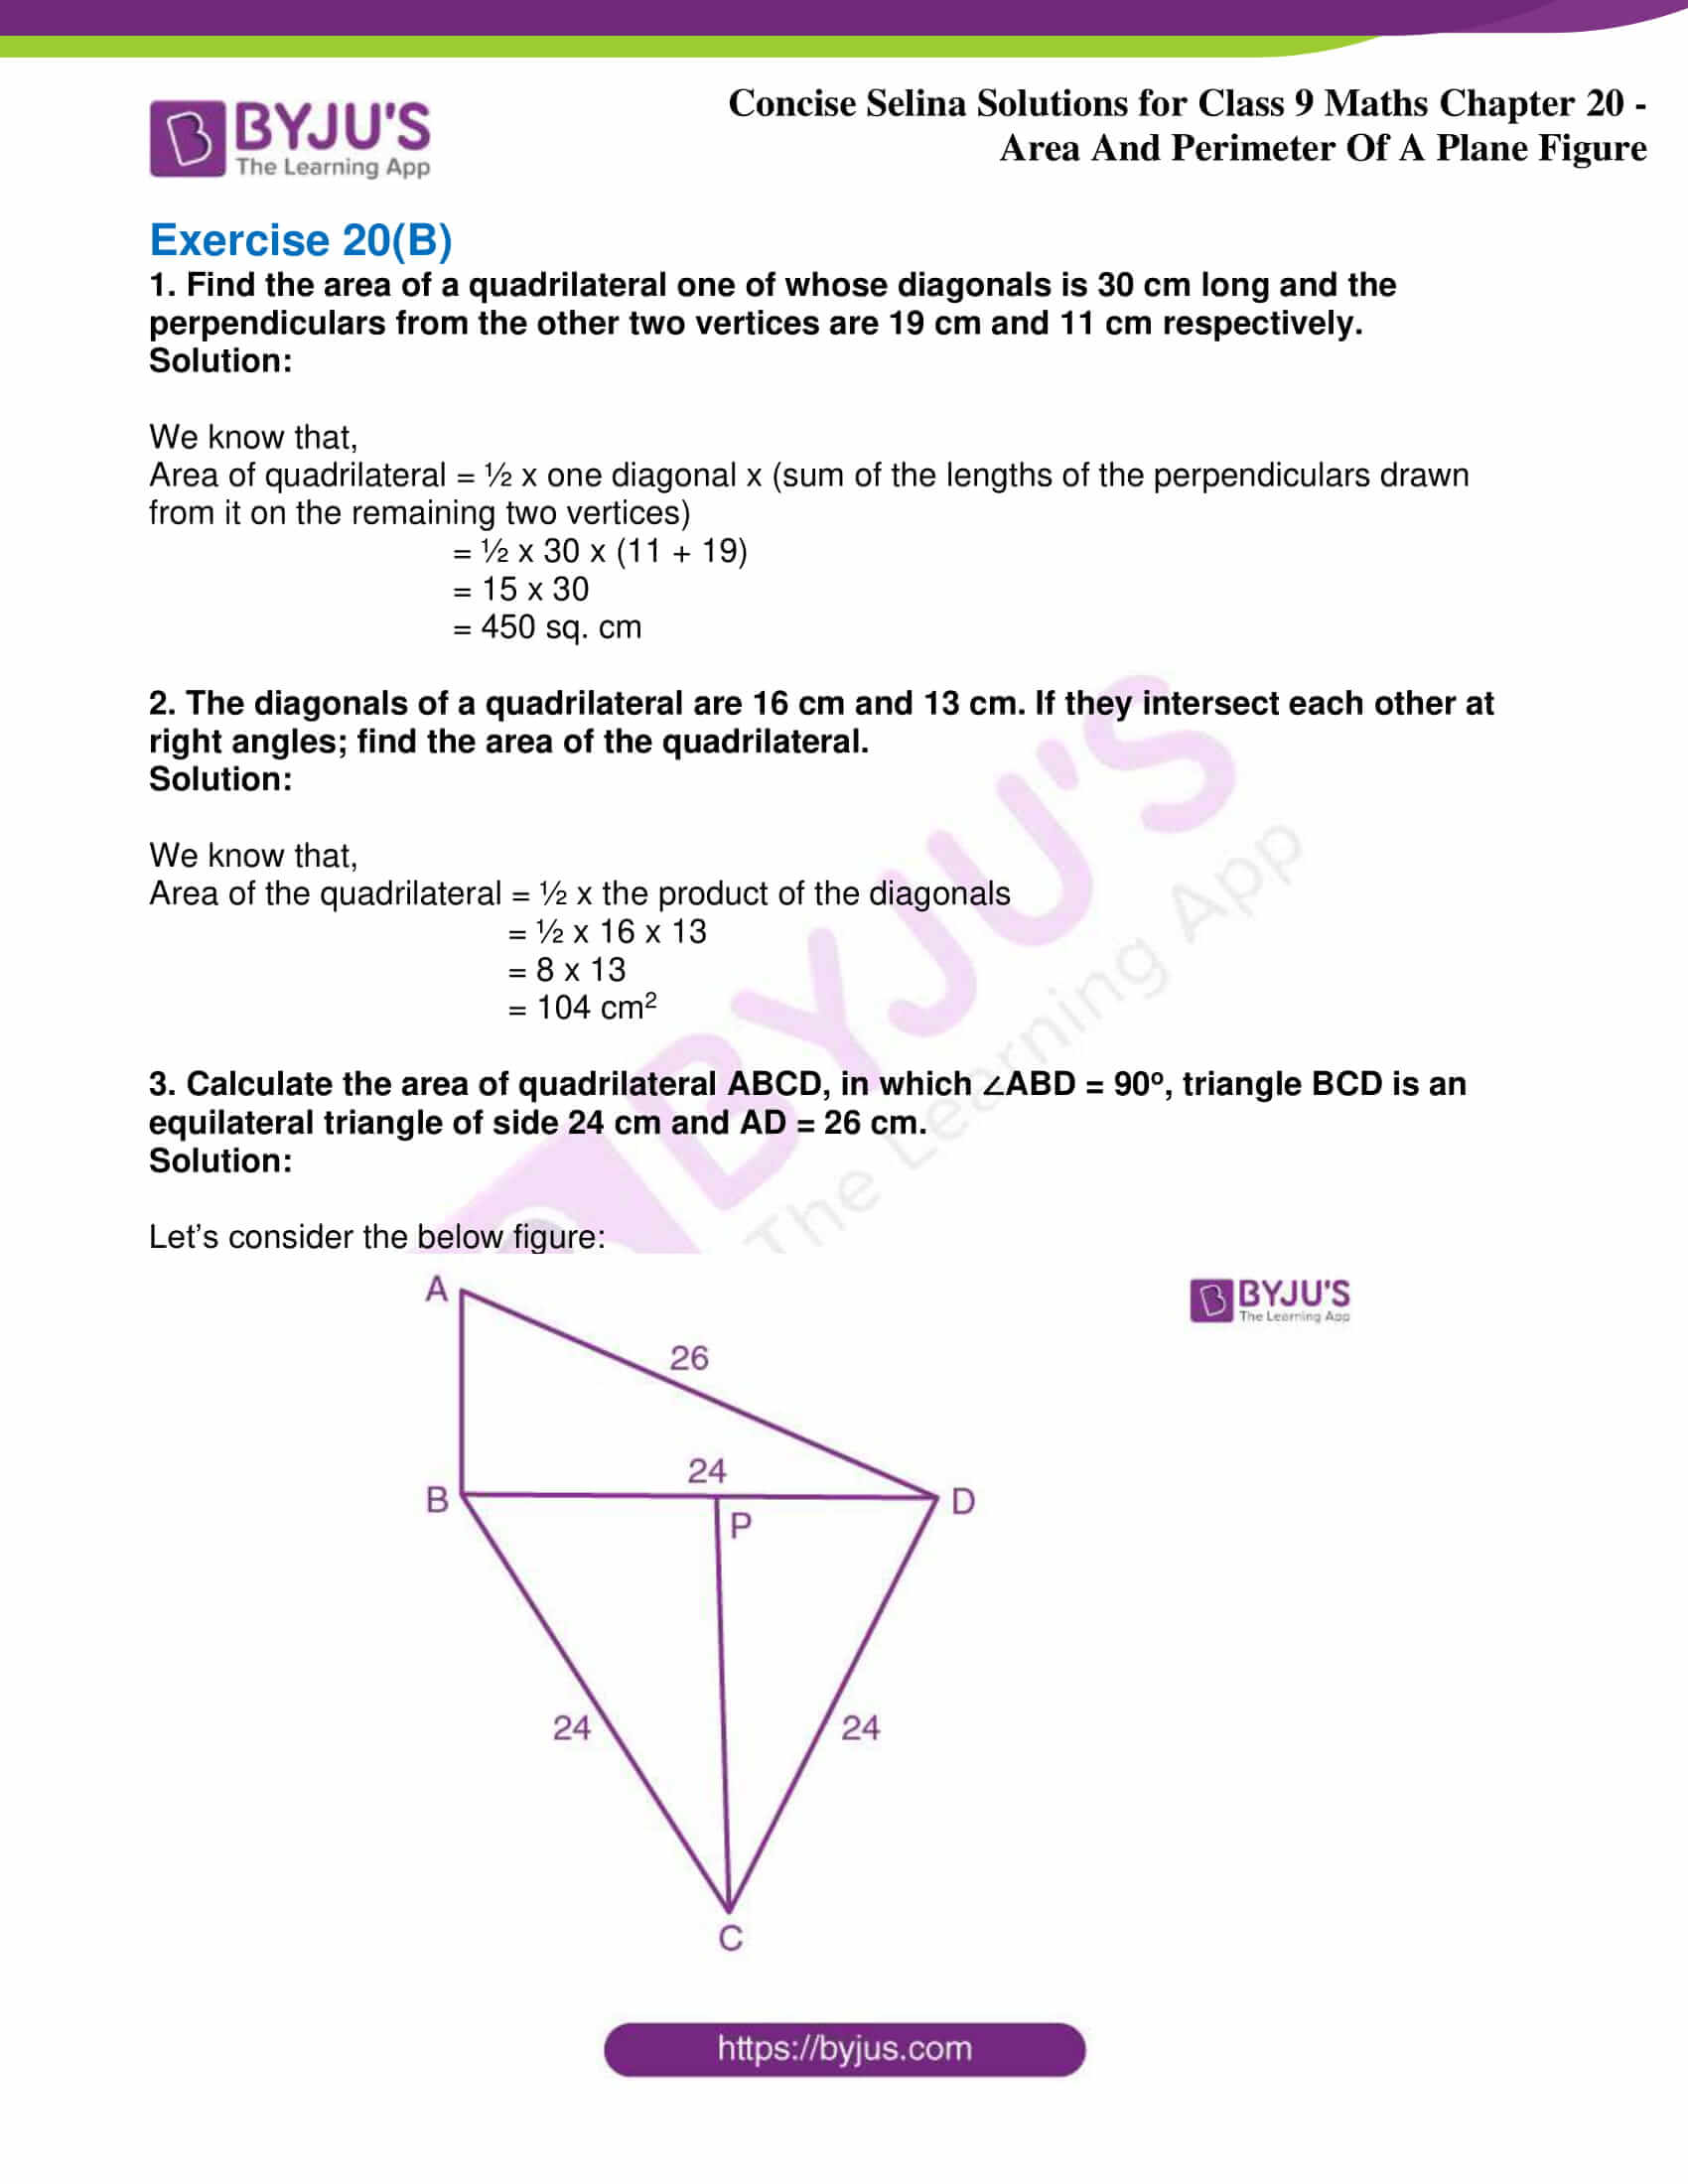 icse class 9 jun9 maths selina solutions chapter 20 area and perimeter of a plane figure 04